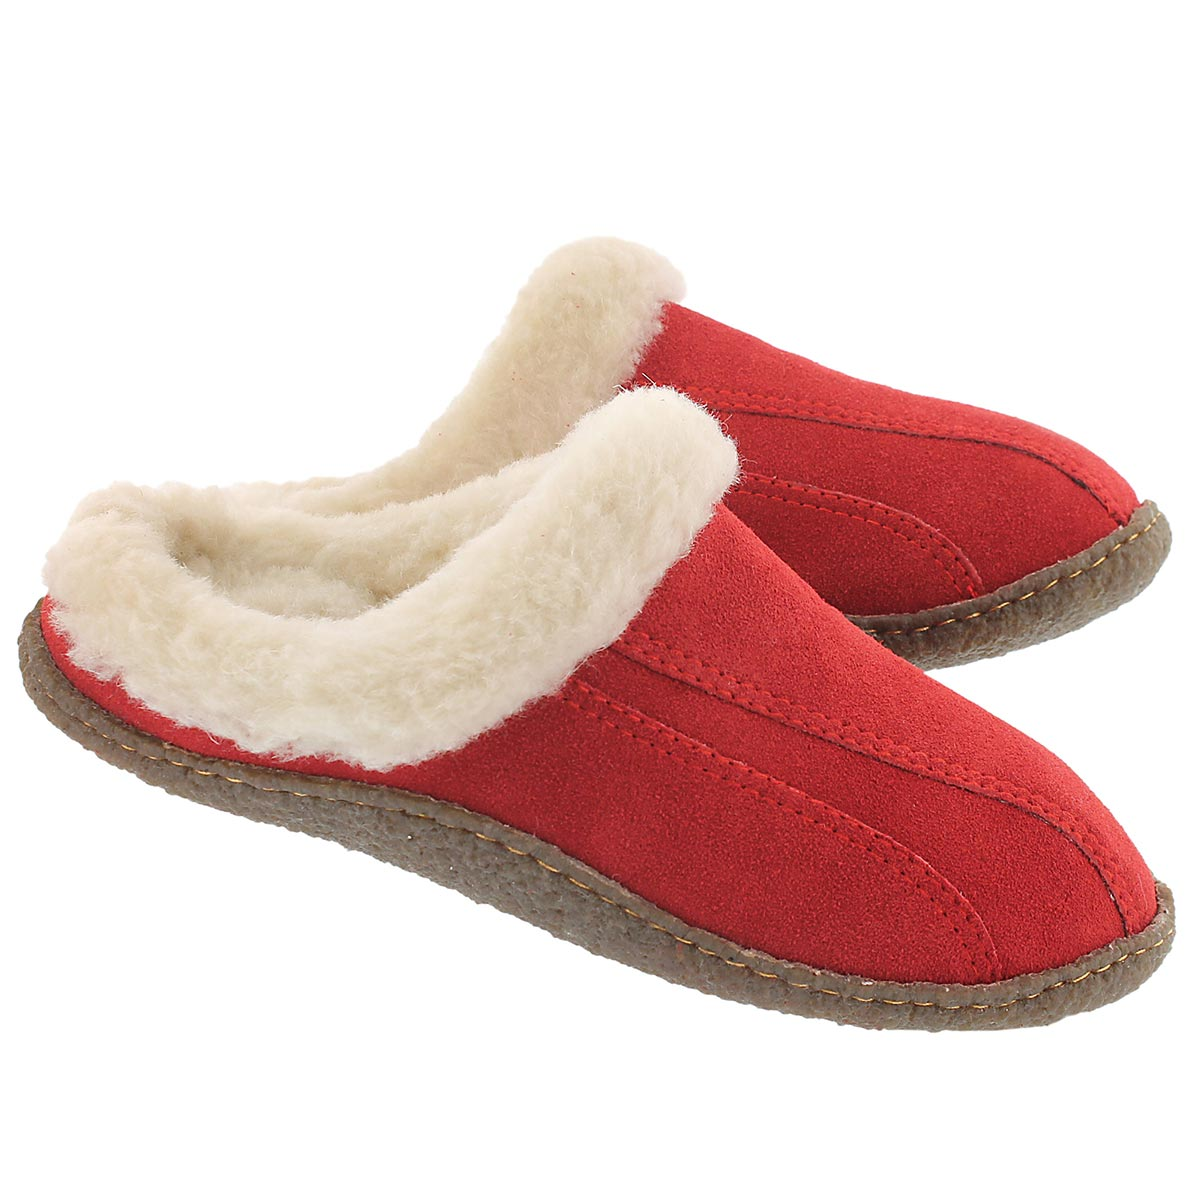 Lds Galaxie III red open back slipper